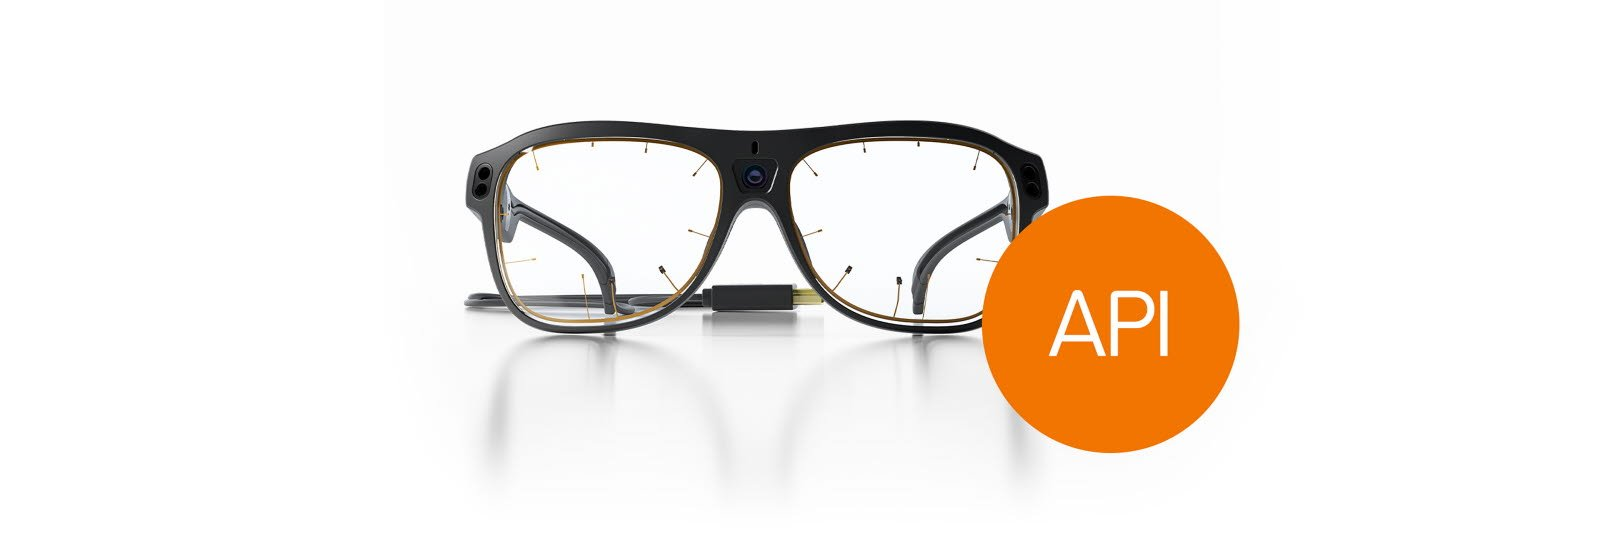 Tobii Pro Glasses 3 API software